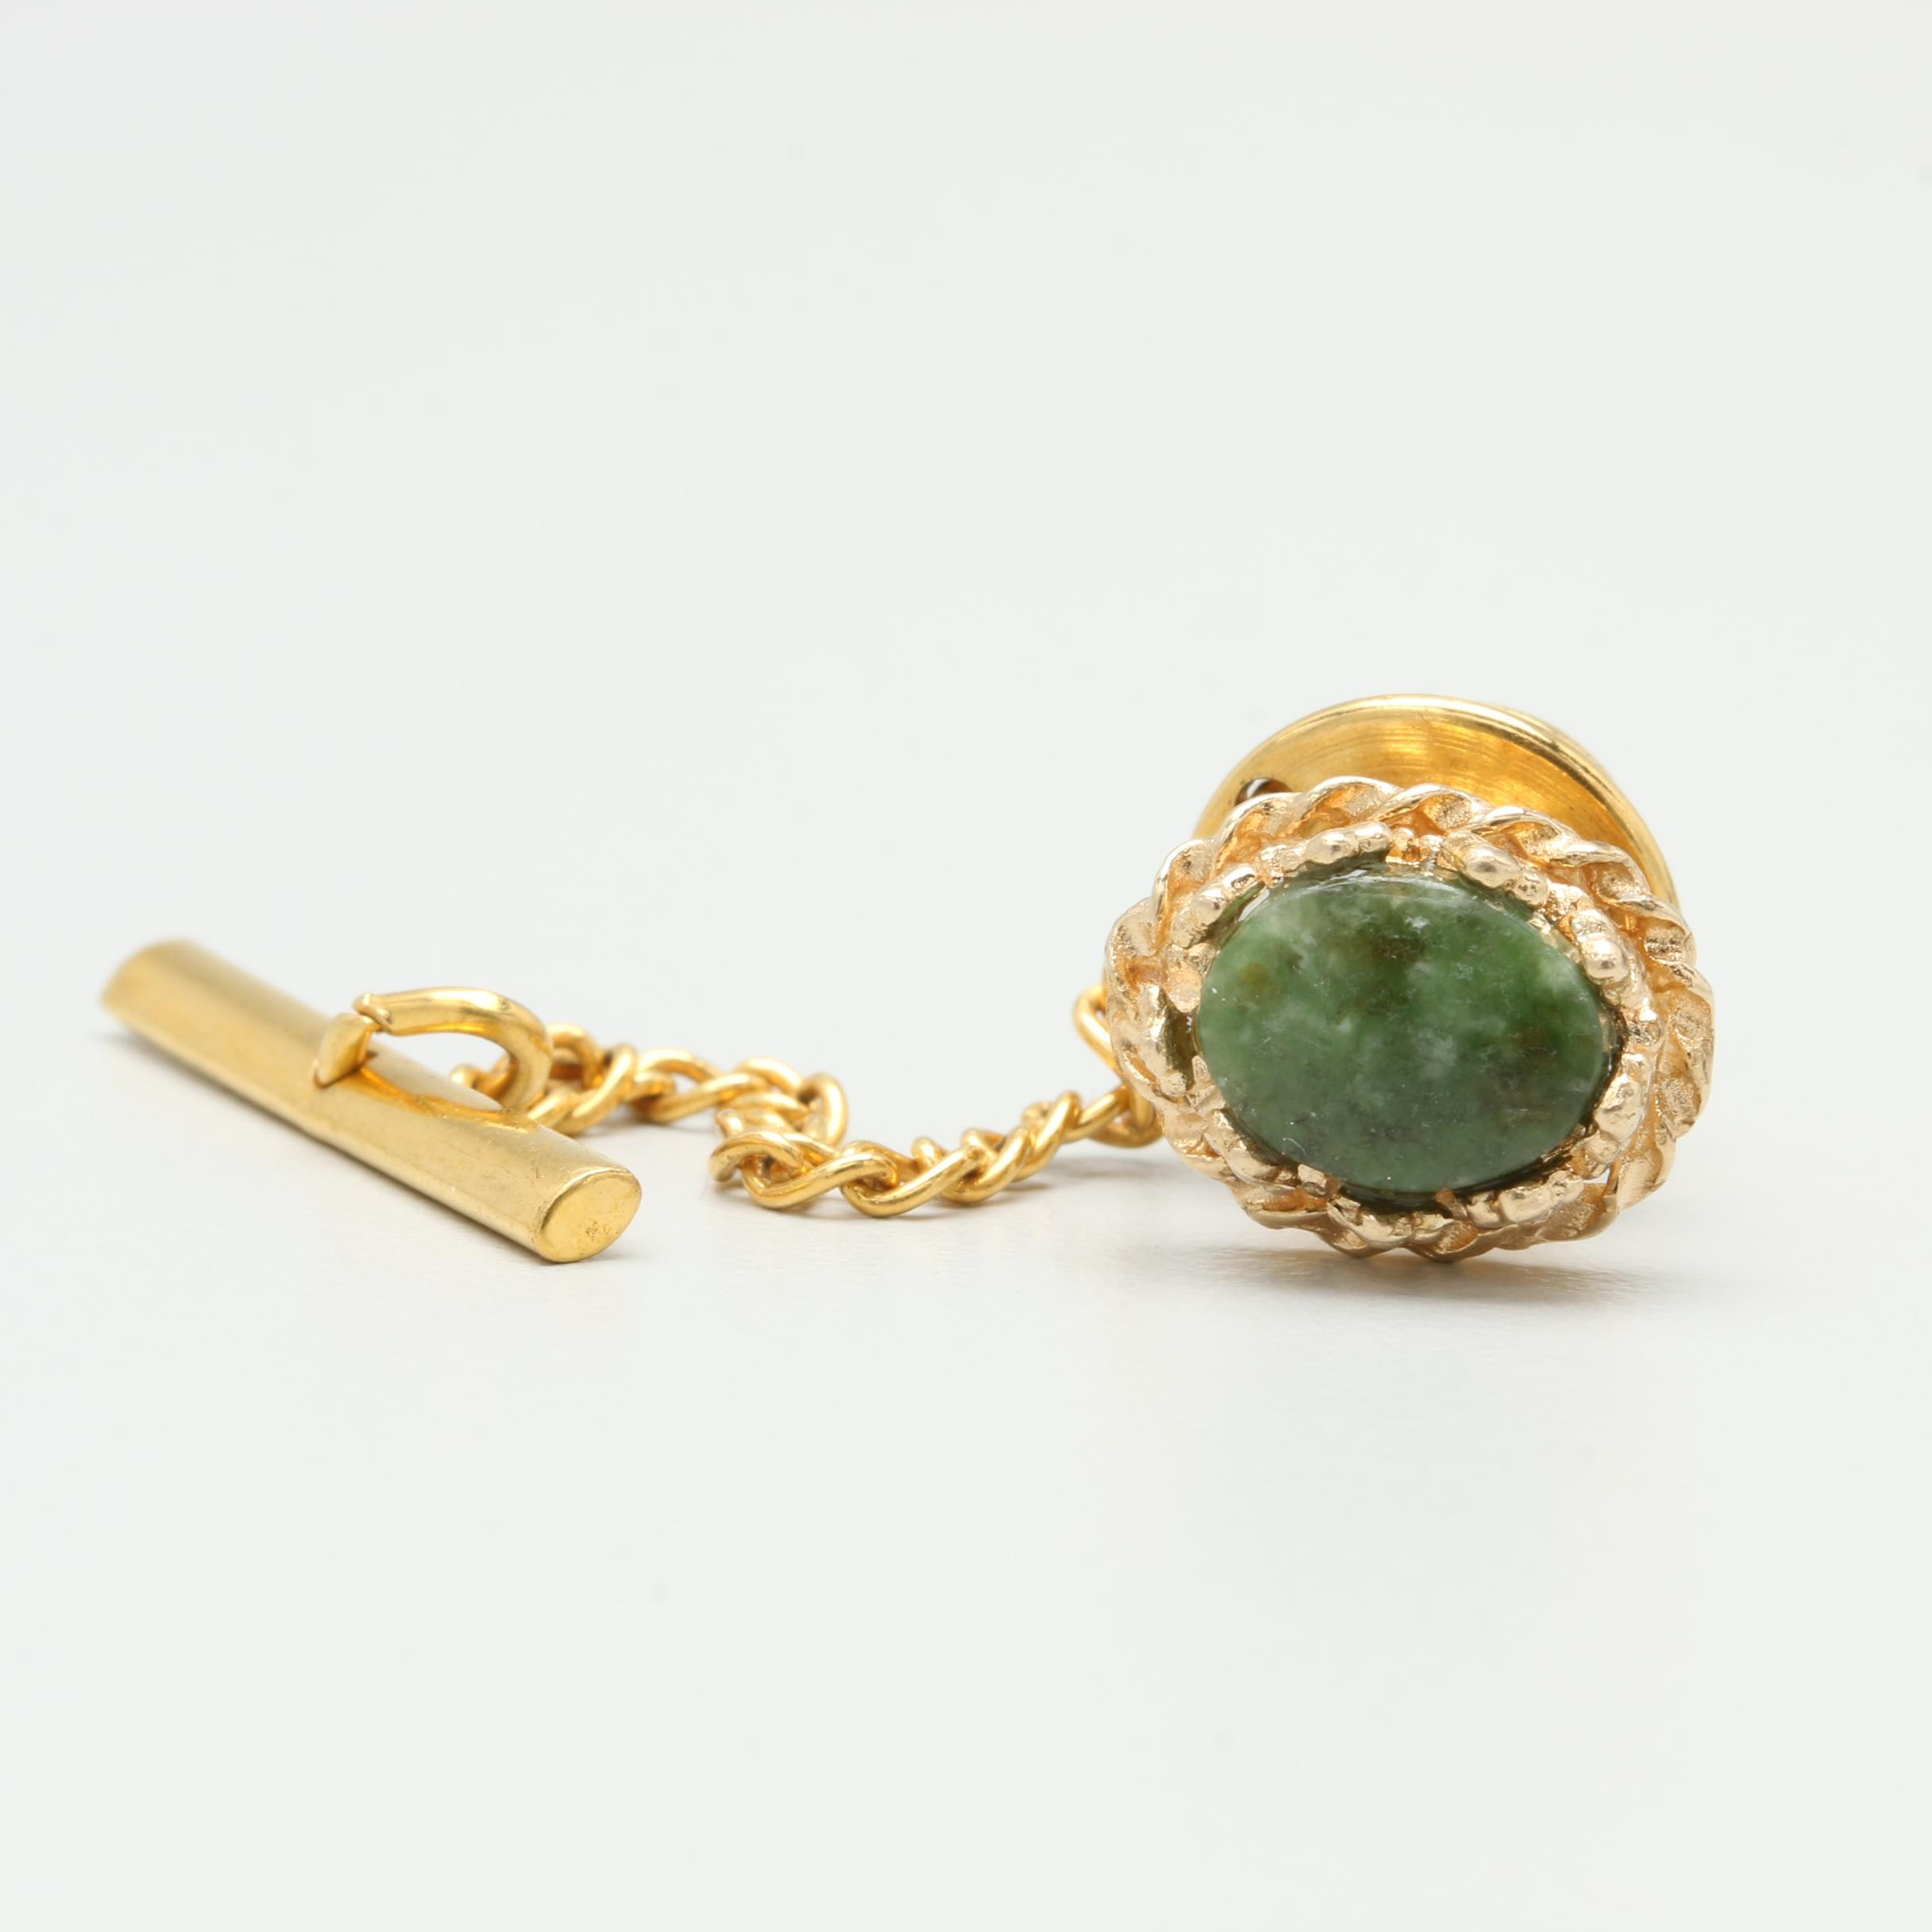 14K Yellow Gold Nephrite Tie Tack